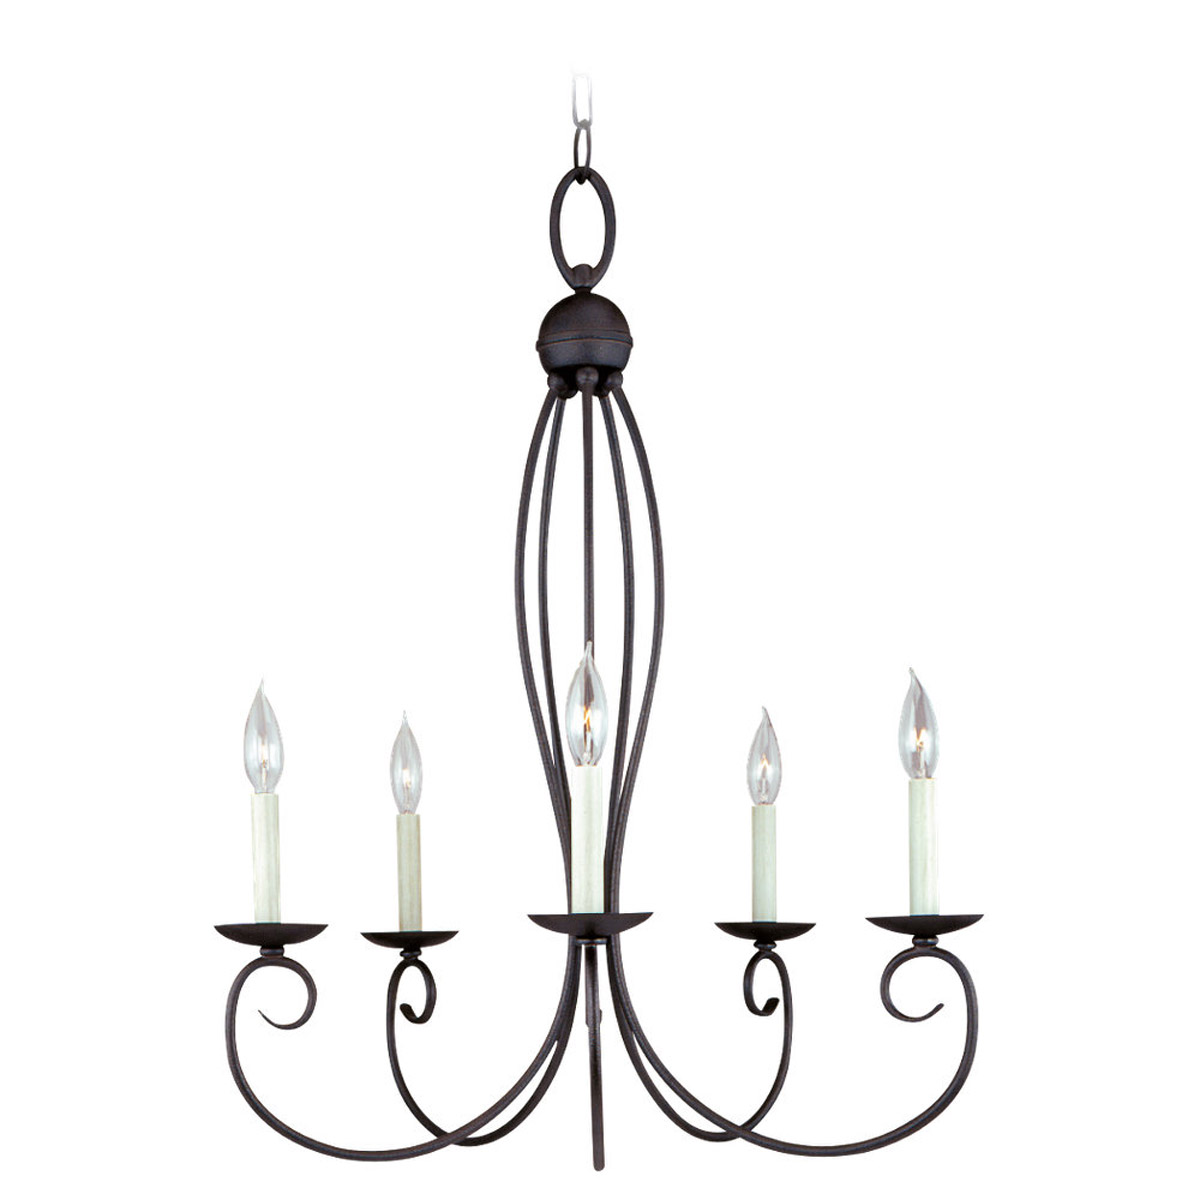 Sea Gull Lighting Pemberton 5 Light Chandelier in Peppercorn 31074-799